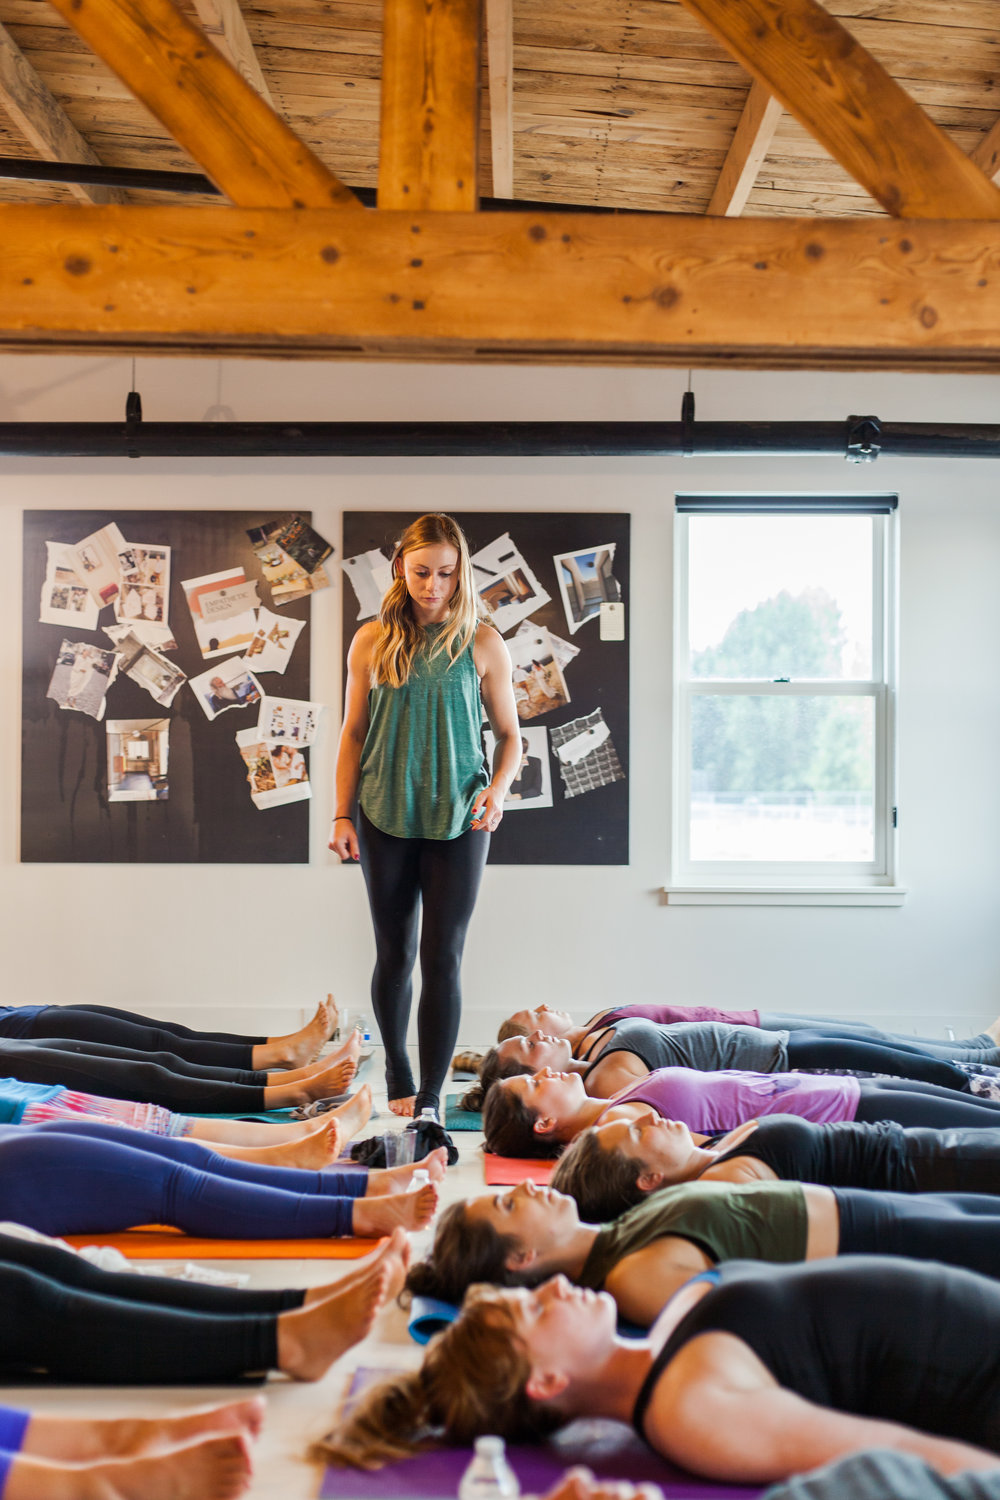 Teaching Experience - -Your Yoga Bozeman, September 2015-present.-Spire Climbing Center, May 2016 - present. (Adults + Kids)-Ekam Yoga, May 2017-May 2018.-Montana State University, December 2016 - May 2017.-Montana Lotus Yoga. 2016. (Adults + Kids)-Yellowstone Club Substitute Teacher, winter season 2017.-Private Corporate Yoga, May 2016-present.-Mountain Yoga, February 2019-present.-Big Sky Yoga Retreats, Summer 2018-present.-I've taught at many events throughout the Bozeman area!-Arm Balance/Inversion Workshops-Yoga Off the Mat workshop